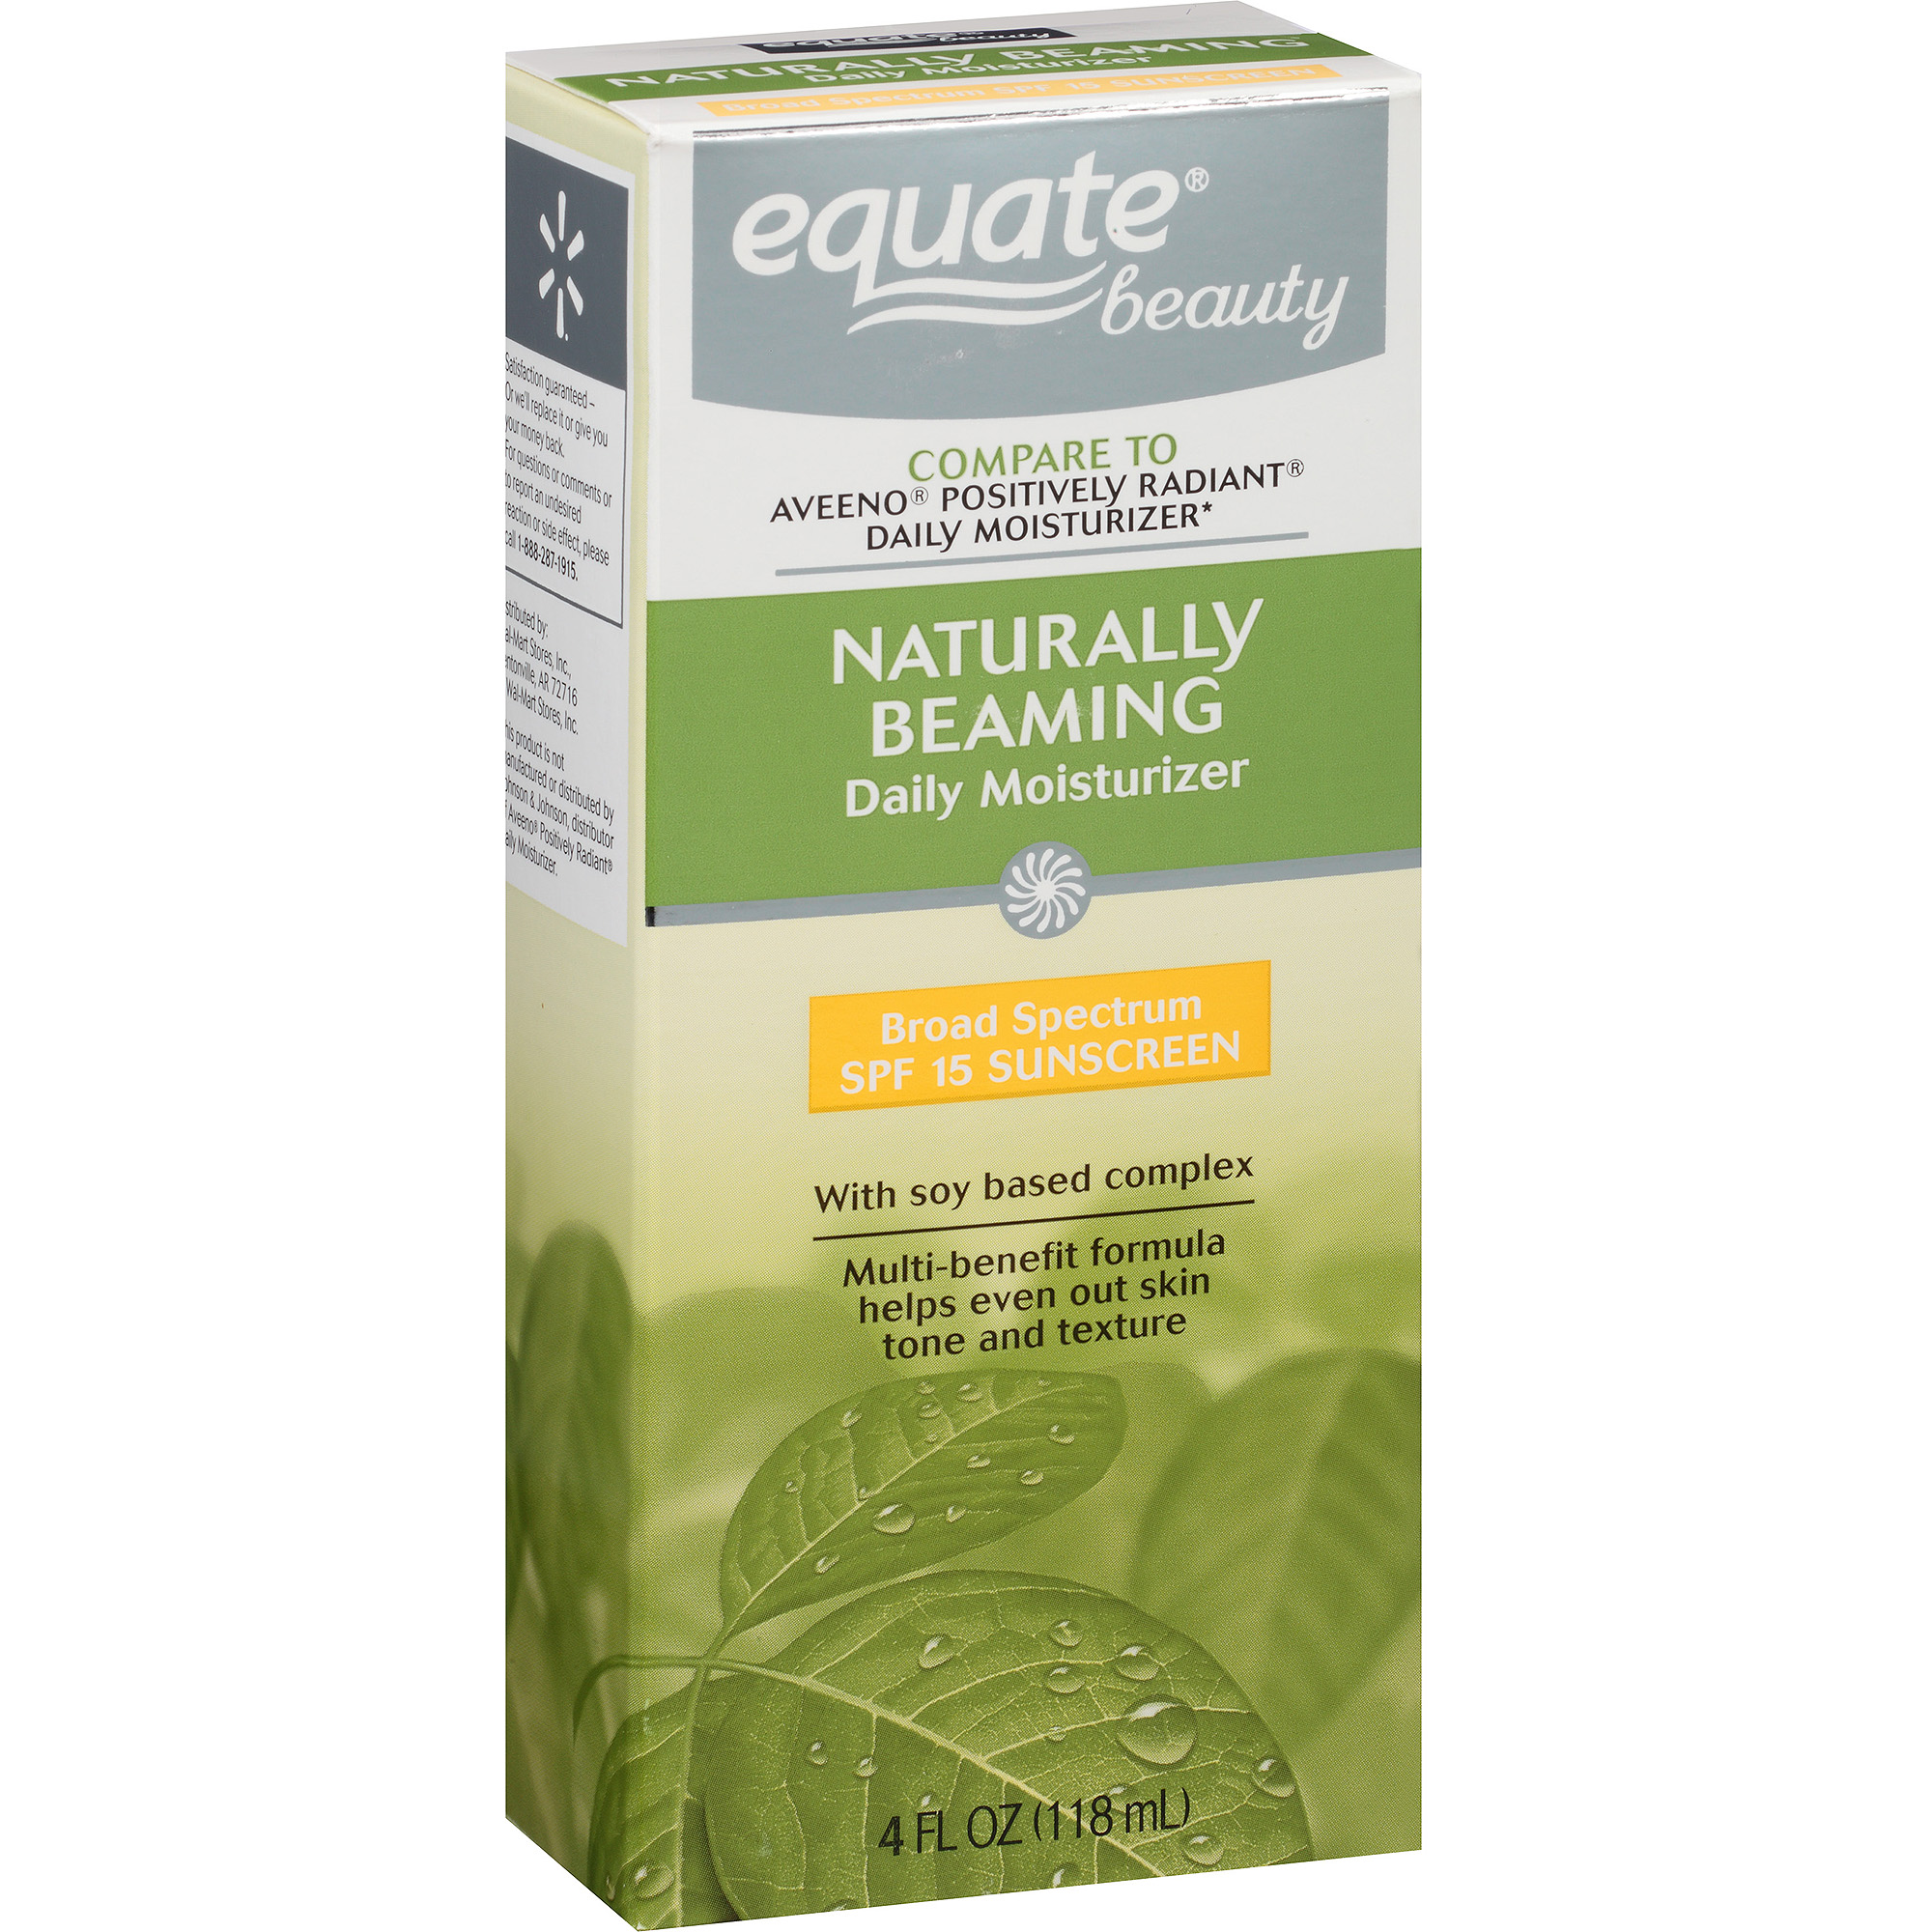 Equate Naturally Beaming Daily Moisturizer with Soy Based Complex, 4 fl oz